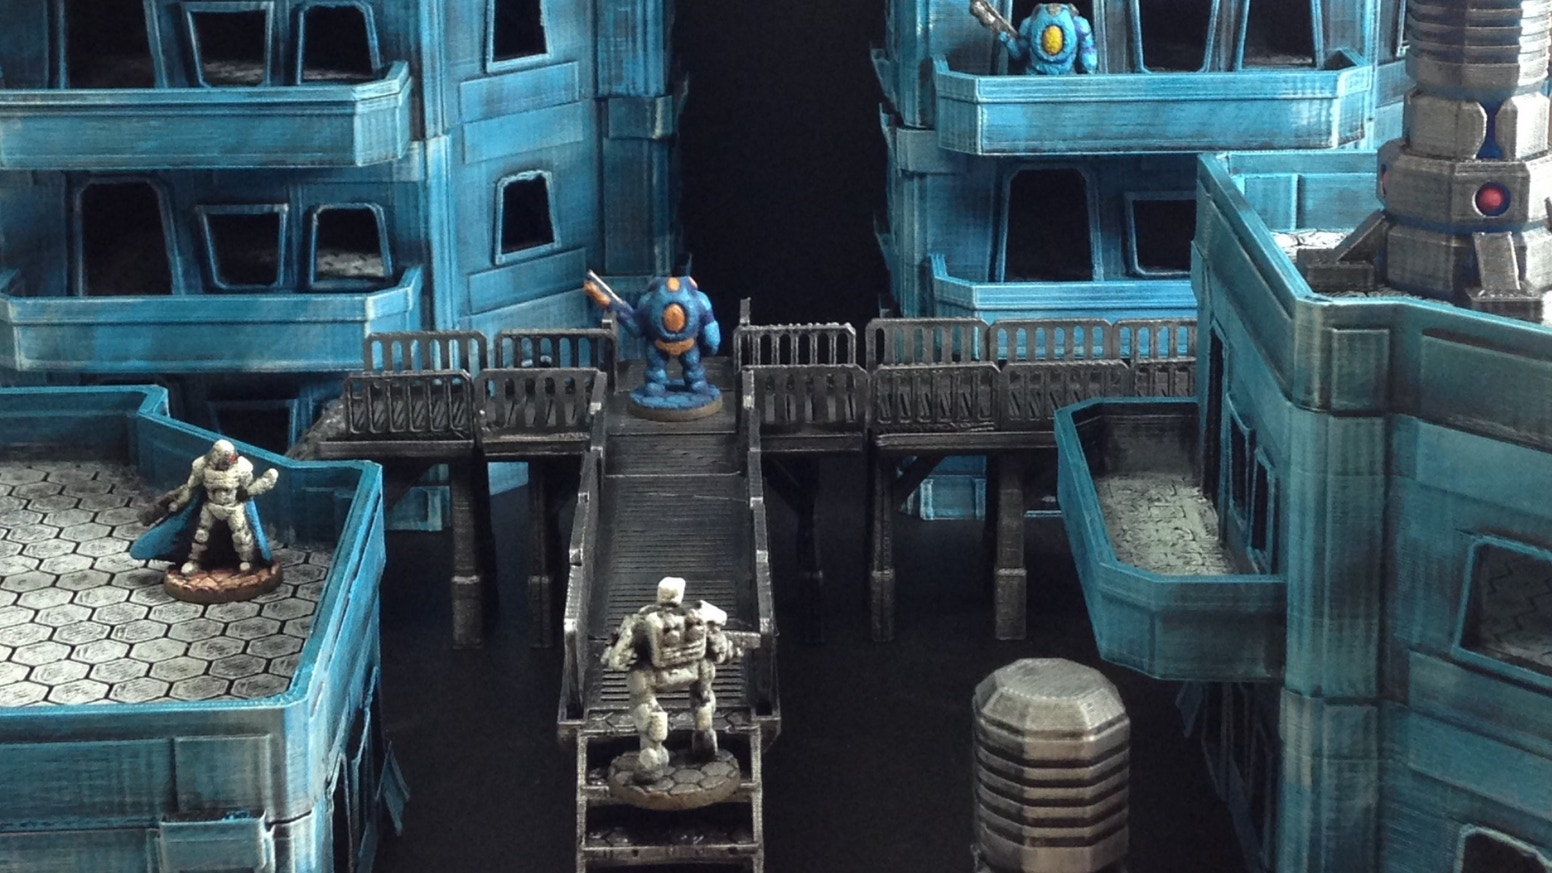 Starchitecture: 3D printed 15mm scale Sci-Fi Cityscape by